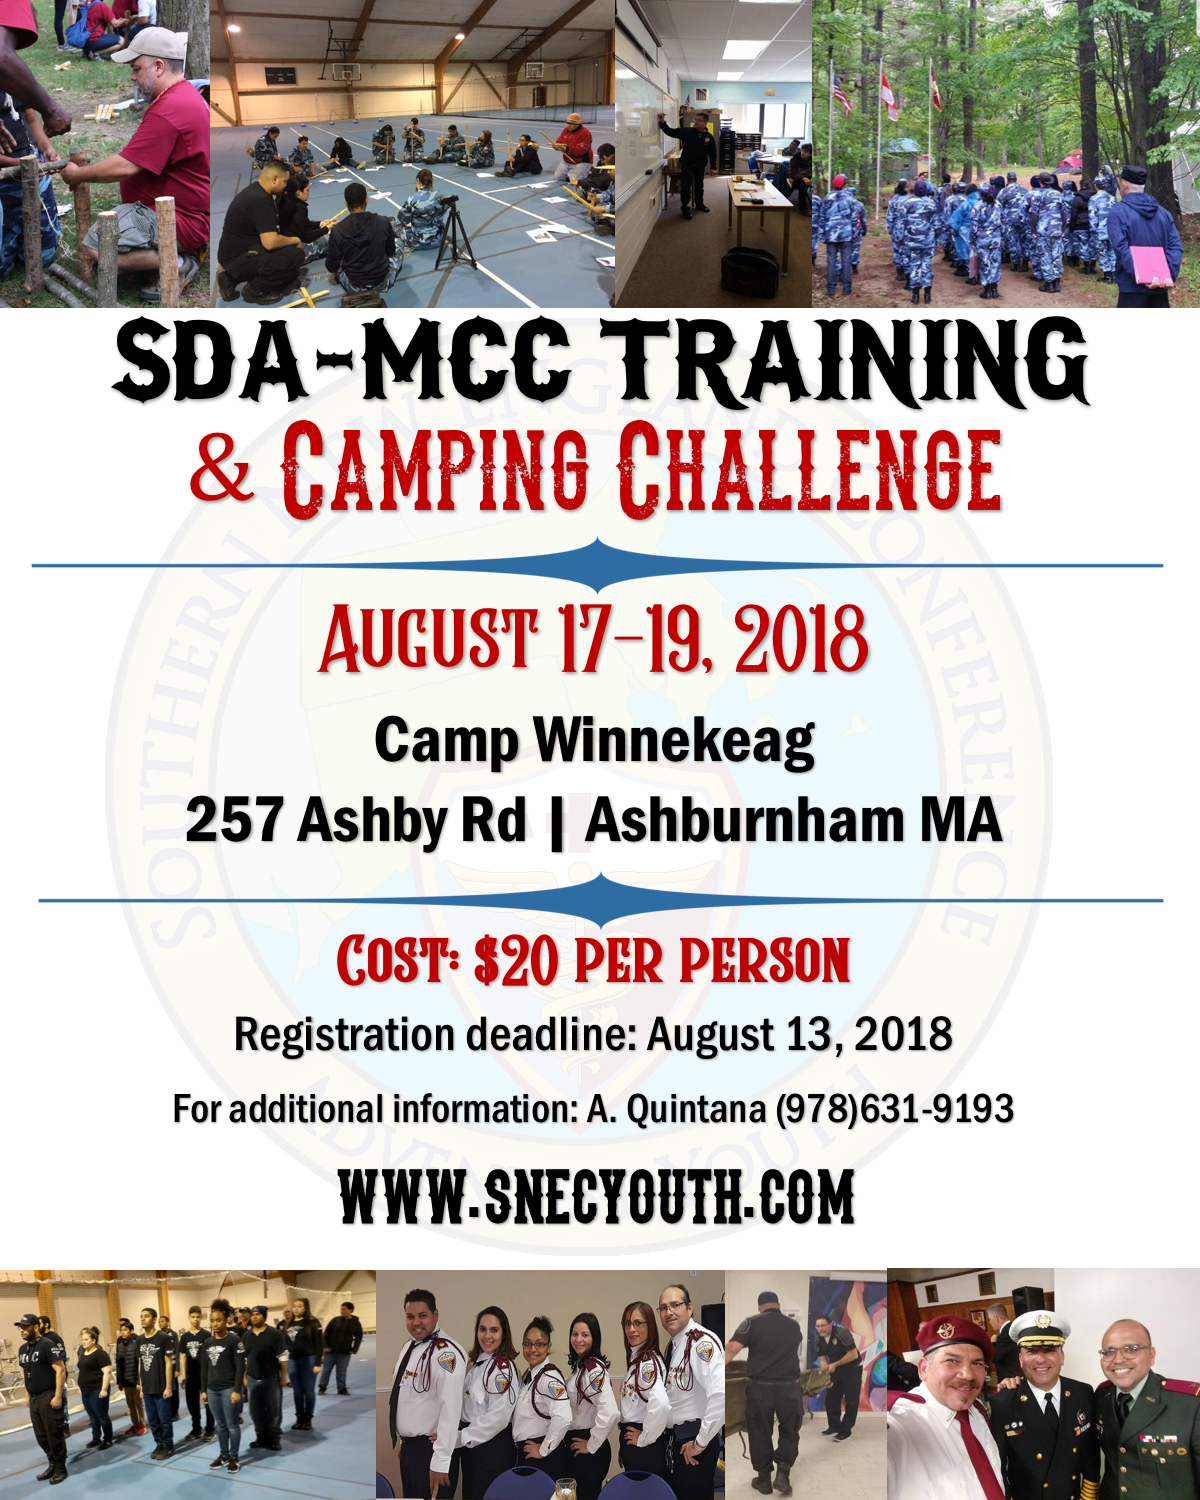 SDA-MCC Training and Camping Challenge